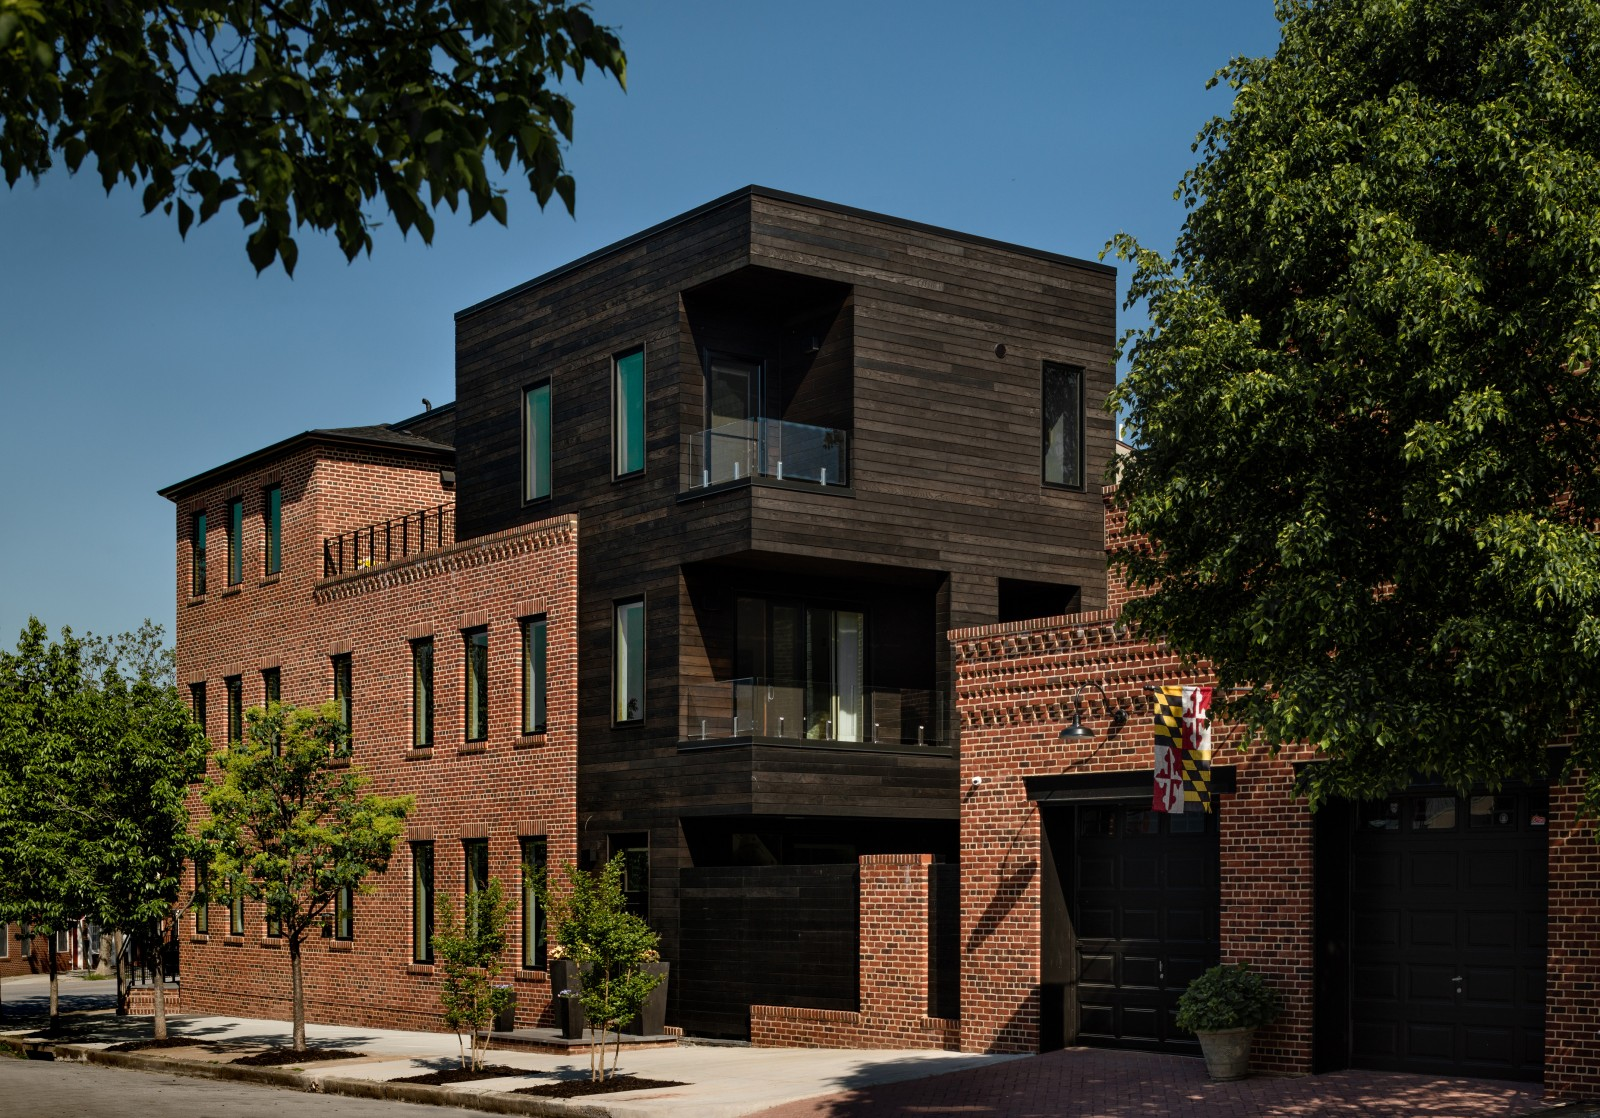 taphouse_003_exterior-fit-1600_1200.jpg